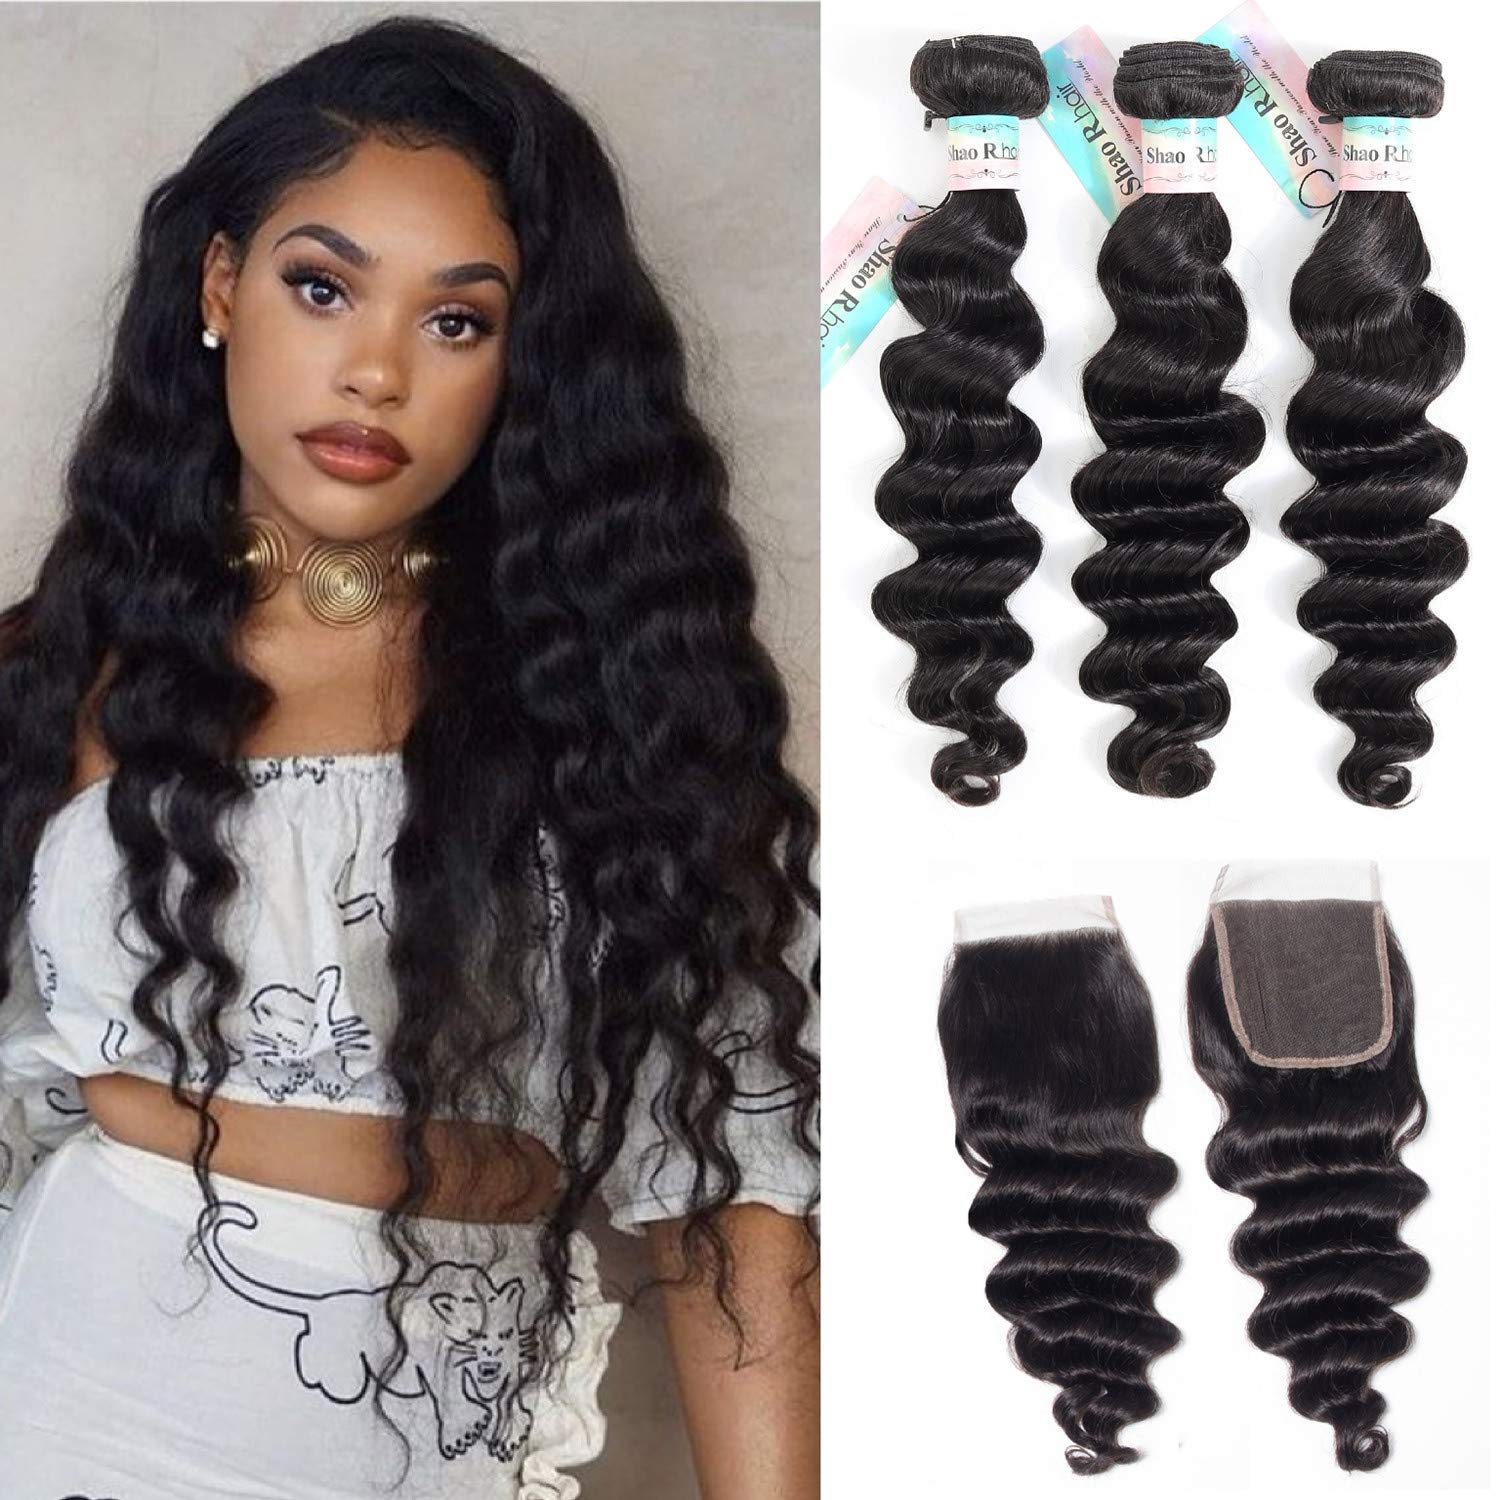 """9A Brazilian Loose Deep Wave Bundles with Closure,Brazilian Virgin Hair Loose Deep Curly Hair,100% Human Hair 3 Bundles with Swiss Lace Closure Hair Extension Natural Color (20""""22""""24""""with 18 free)"""